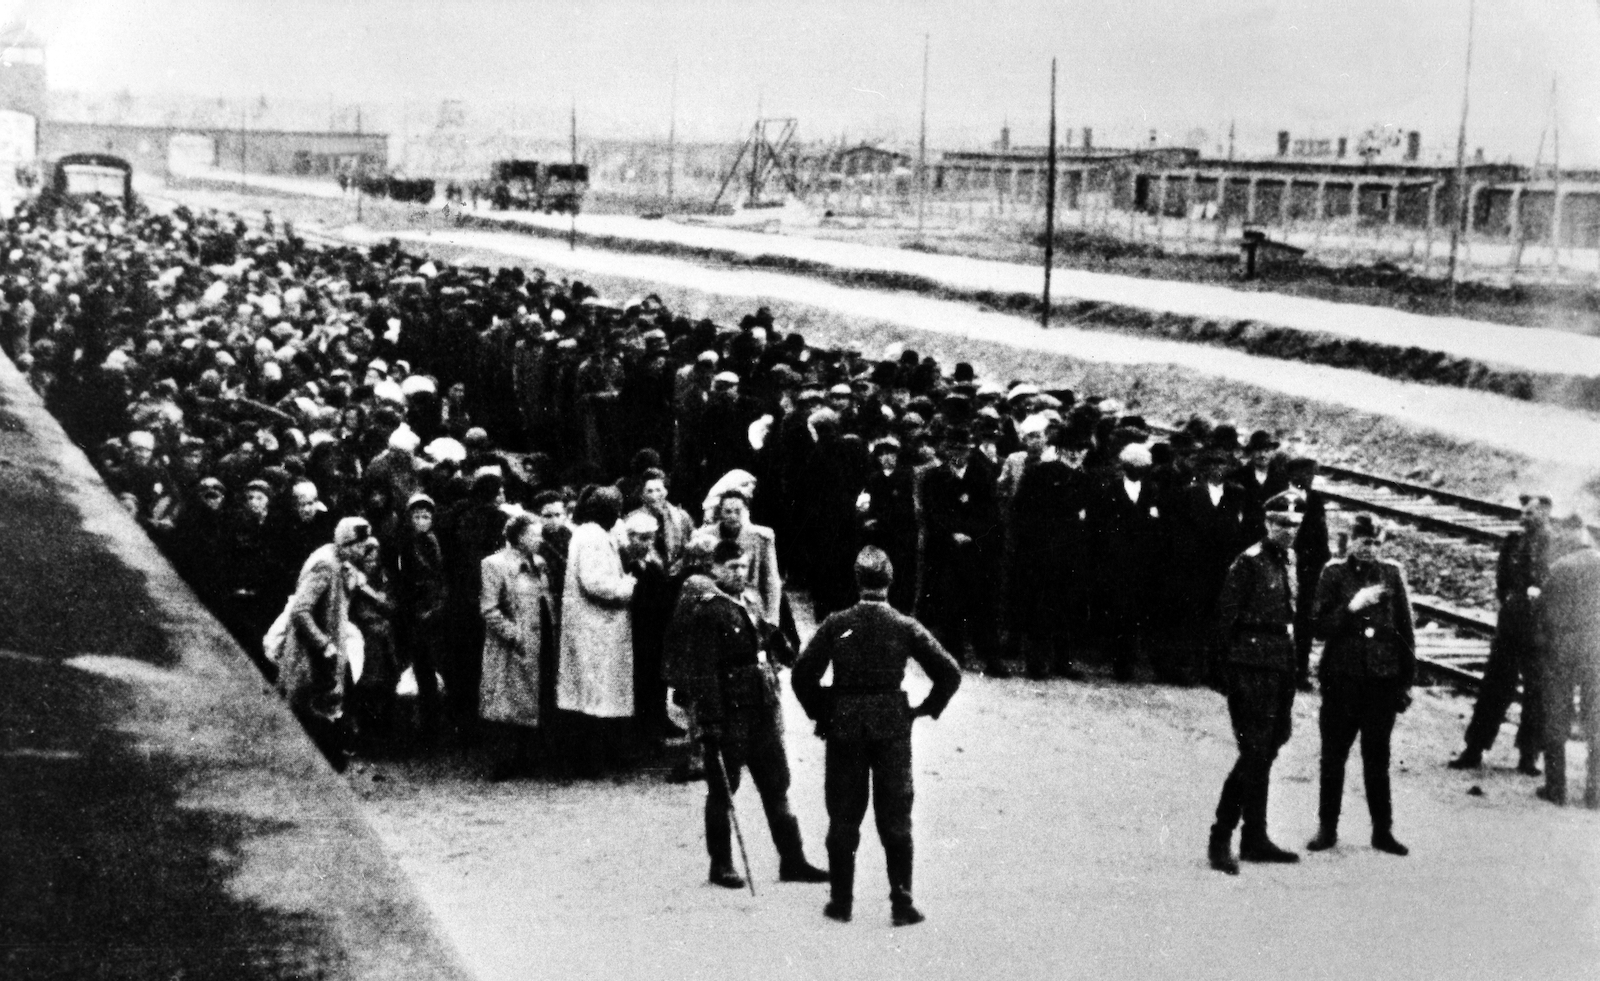 The selection ramp, Auschwitz, 1944